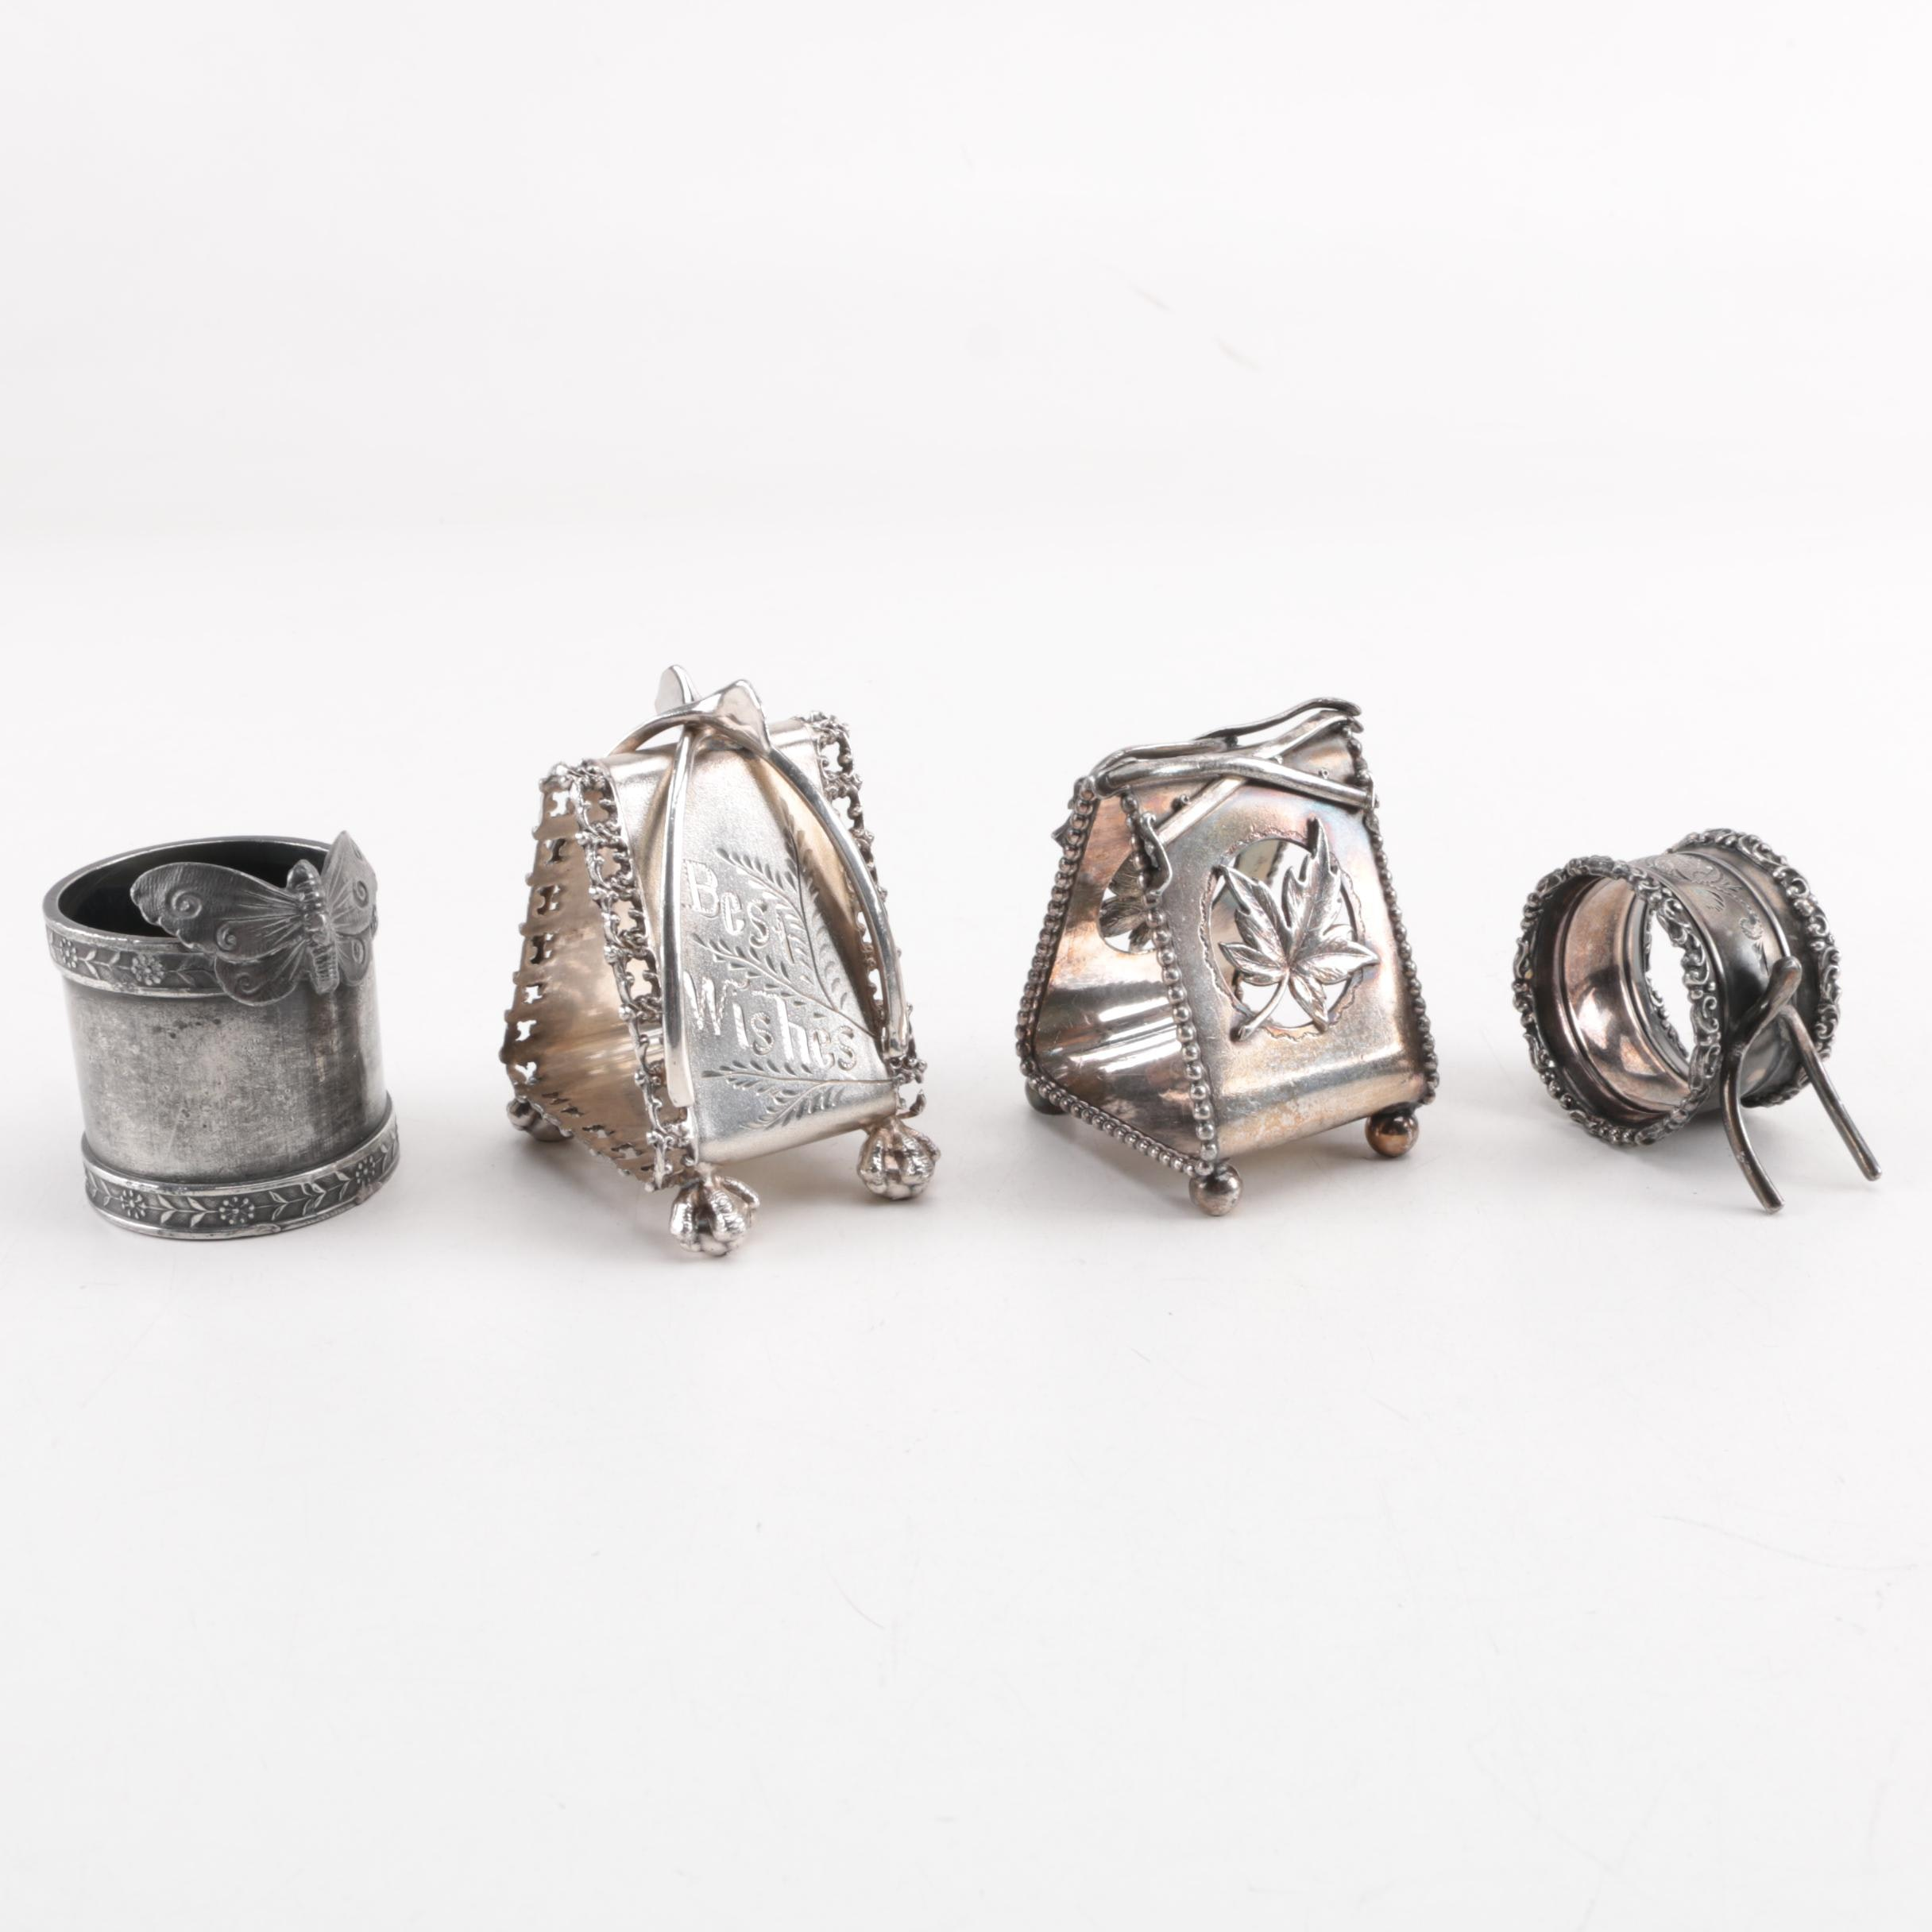 Silver Plate Wishbone and Engraved Napkin Rings, Early 20th Century